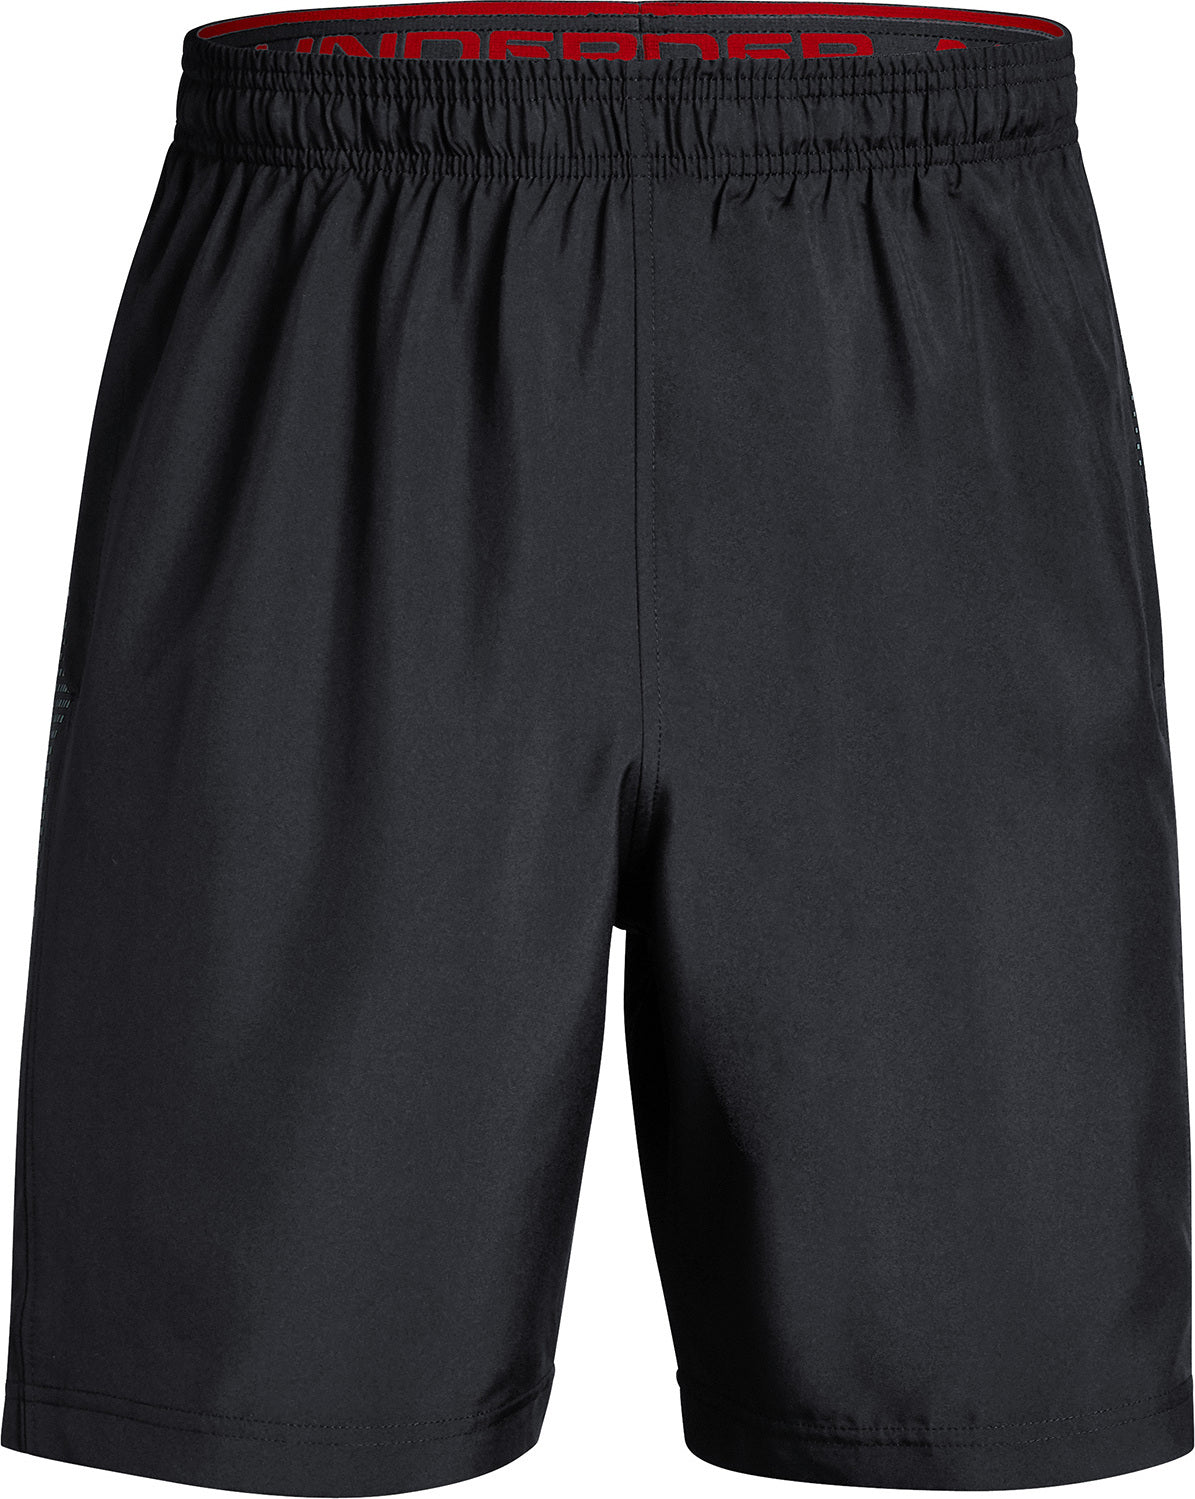 2a534fb0054b Under Armour Men s Ua Woven Graphic Shorts